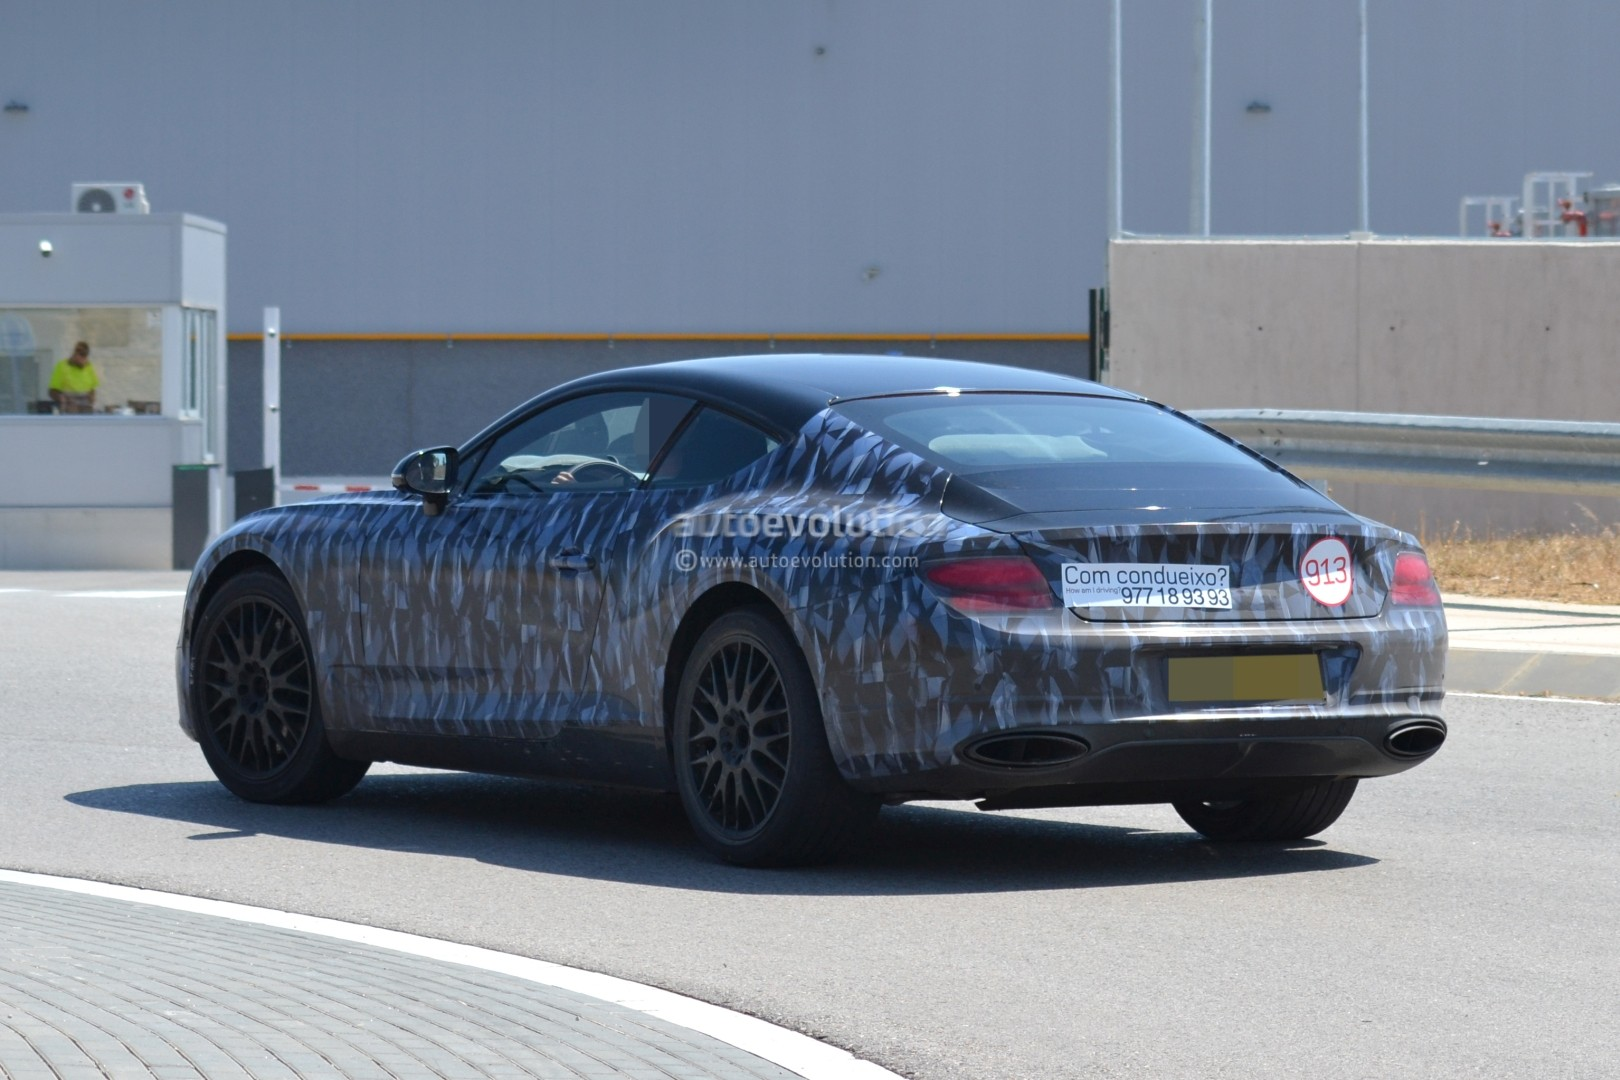 2017 - [Bentley] Continental GT - Page 3 2018-bentley-continental-gt-prototype-reveals-production-intakes-larger-grille_4